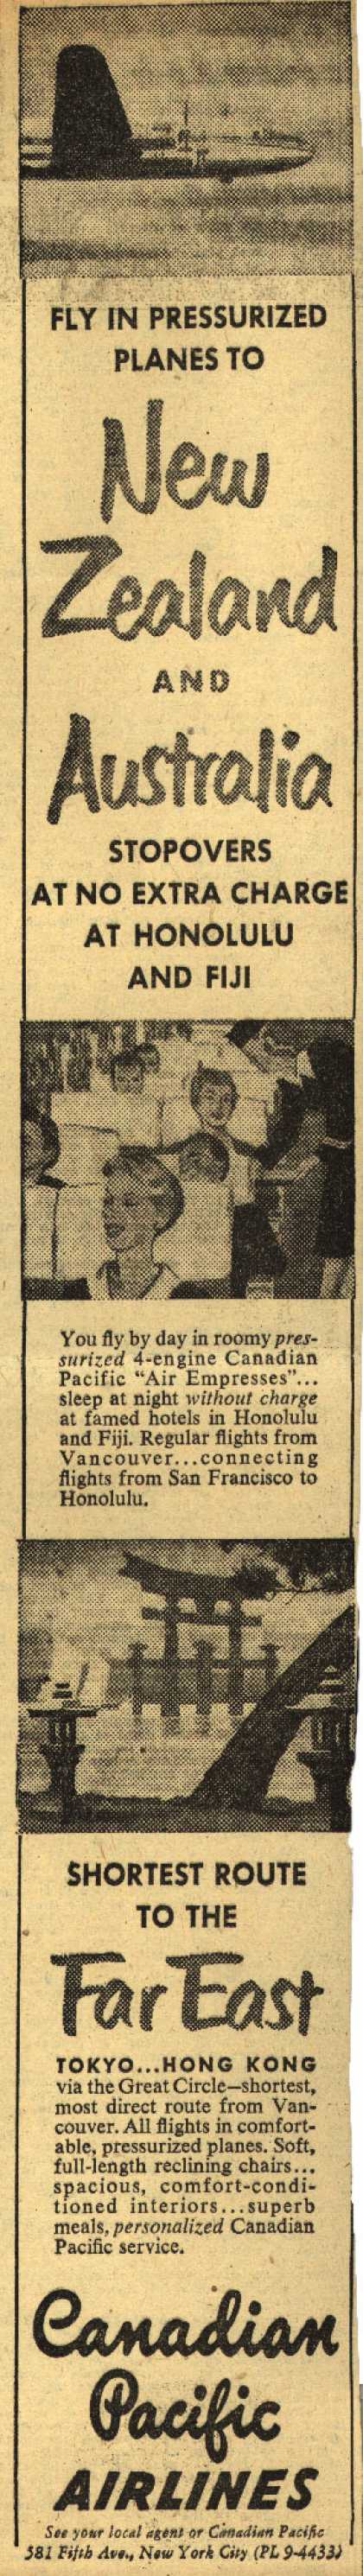 Canadian Pacific Air Line's New Zealand and Australia – Fly In Pressurized Planes to New Zealand and Australia (1950)